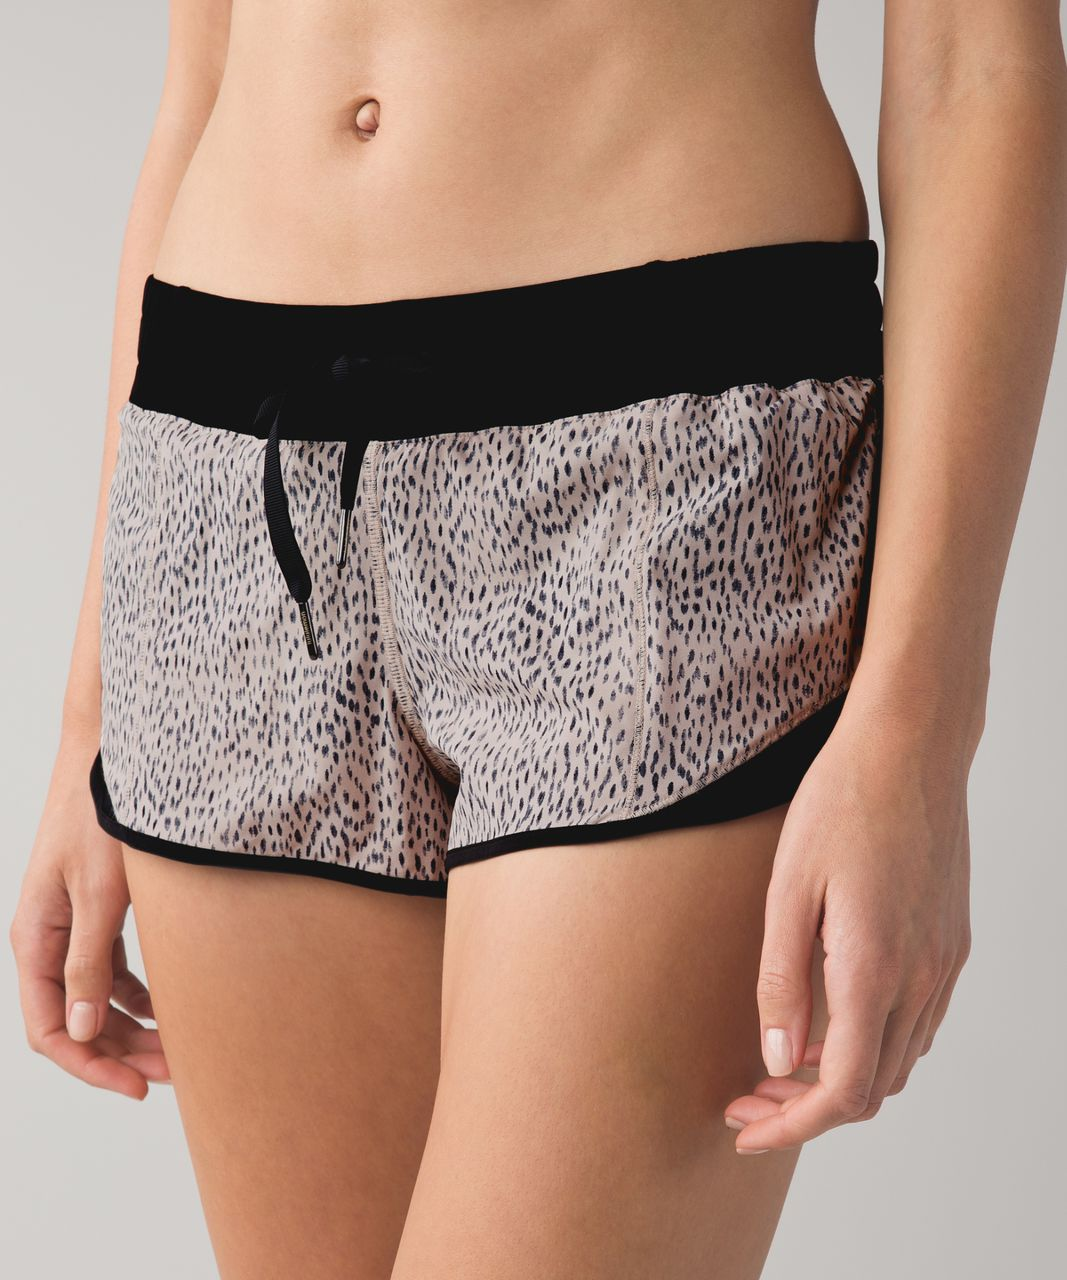 Lululemon Hotty Hot Short - Dottie Dash Grain Black / Black